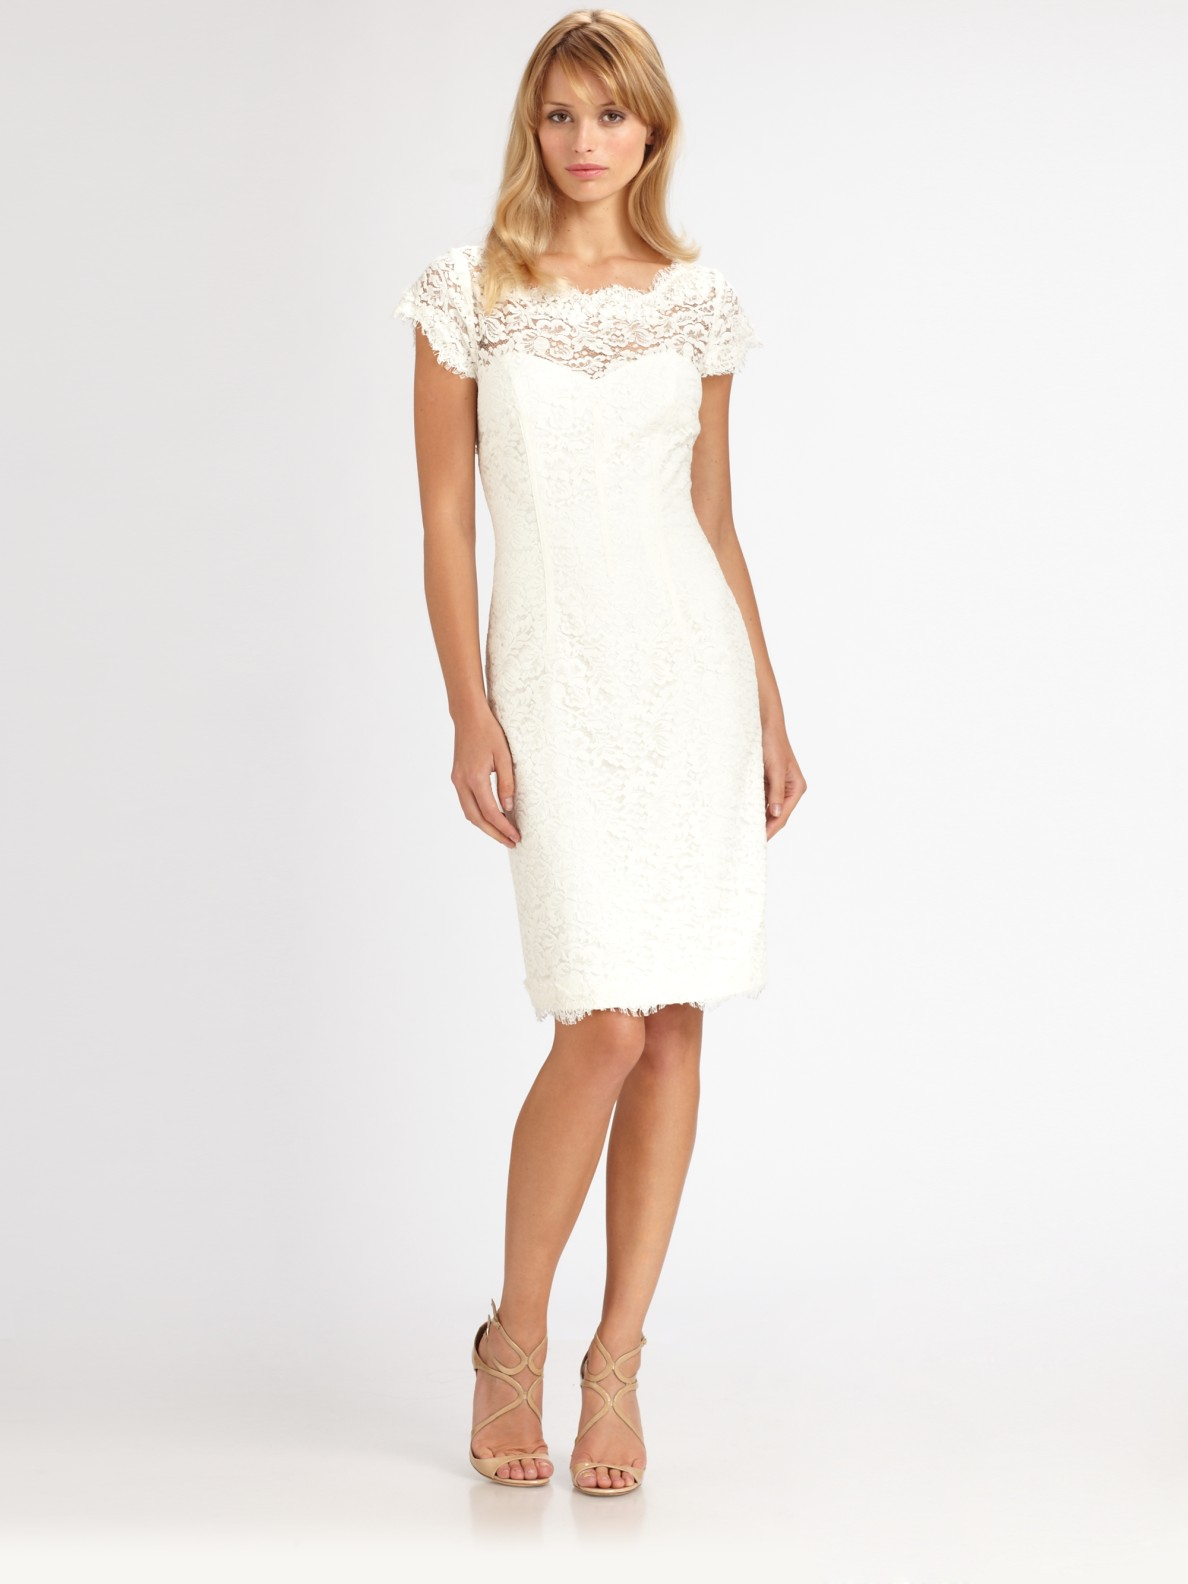 White Lace Dress Dressed Up Girl